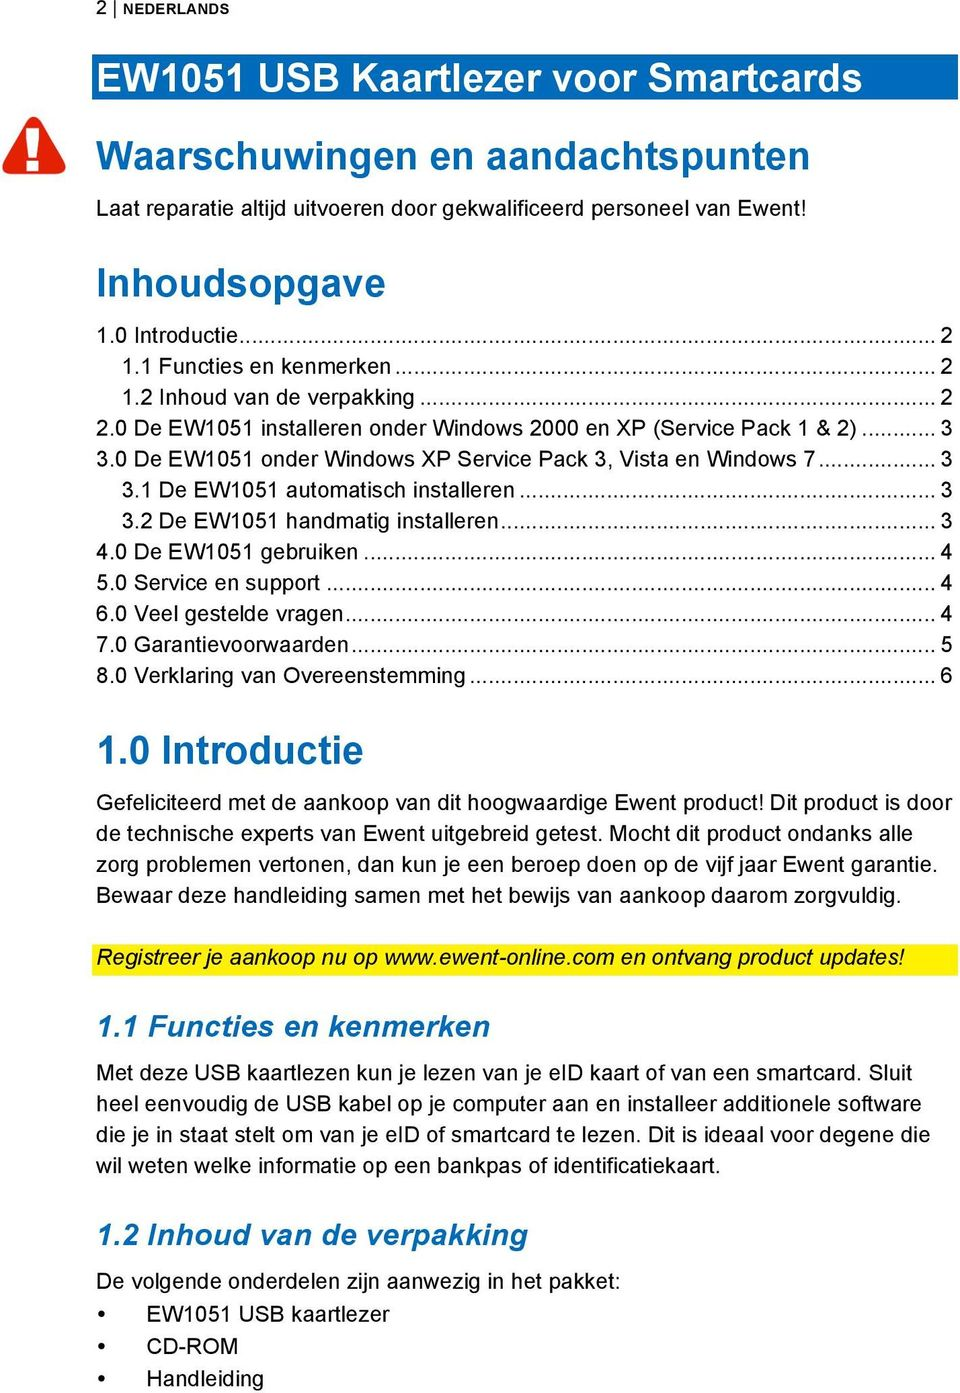 0 De EW1051 onder Windows XP Service Pack 3, Vista en Windows 7... 3 3.1 De EW1051 automatisch installeren... 3 3.2 De EW1051 handmatig installeren... 3 4.0 De EW1051 gebruiken... 4 5.